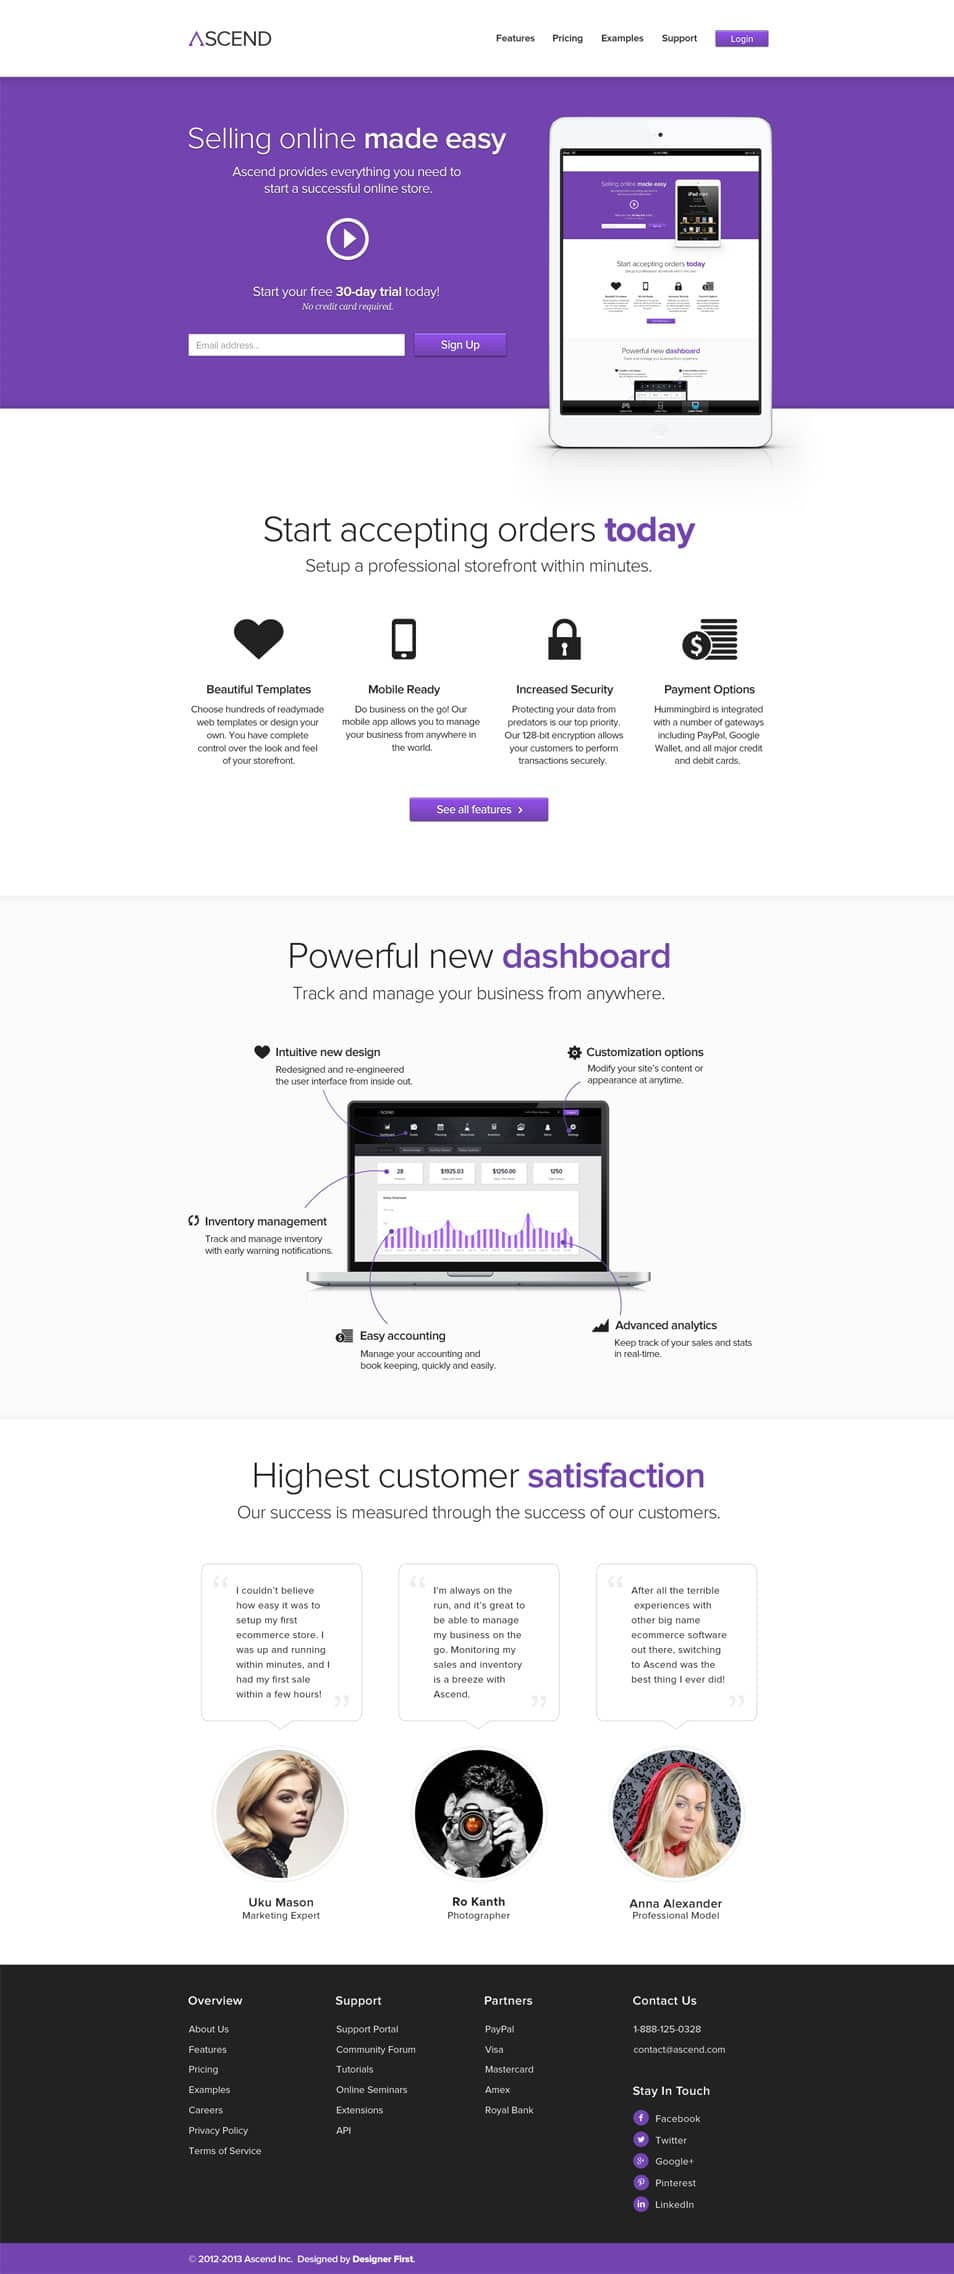 Ascend – PSD ecommerce template